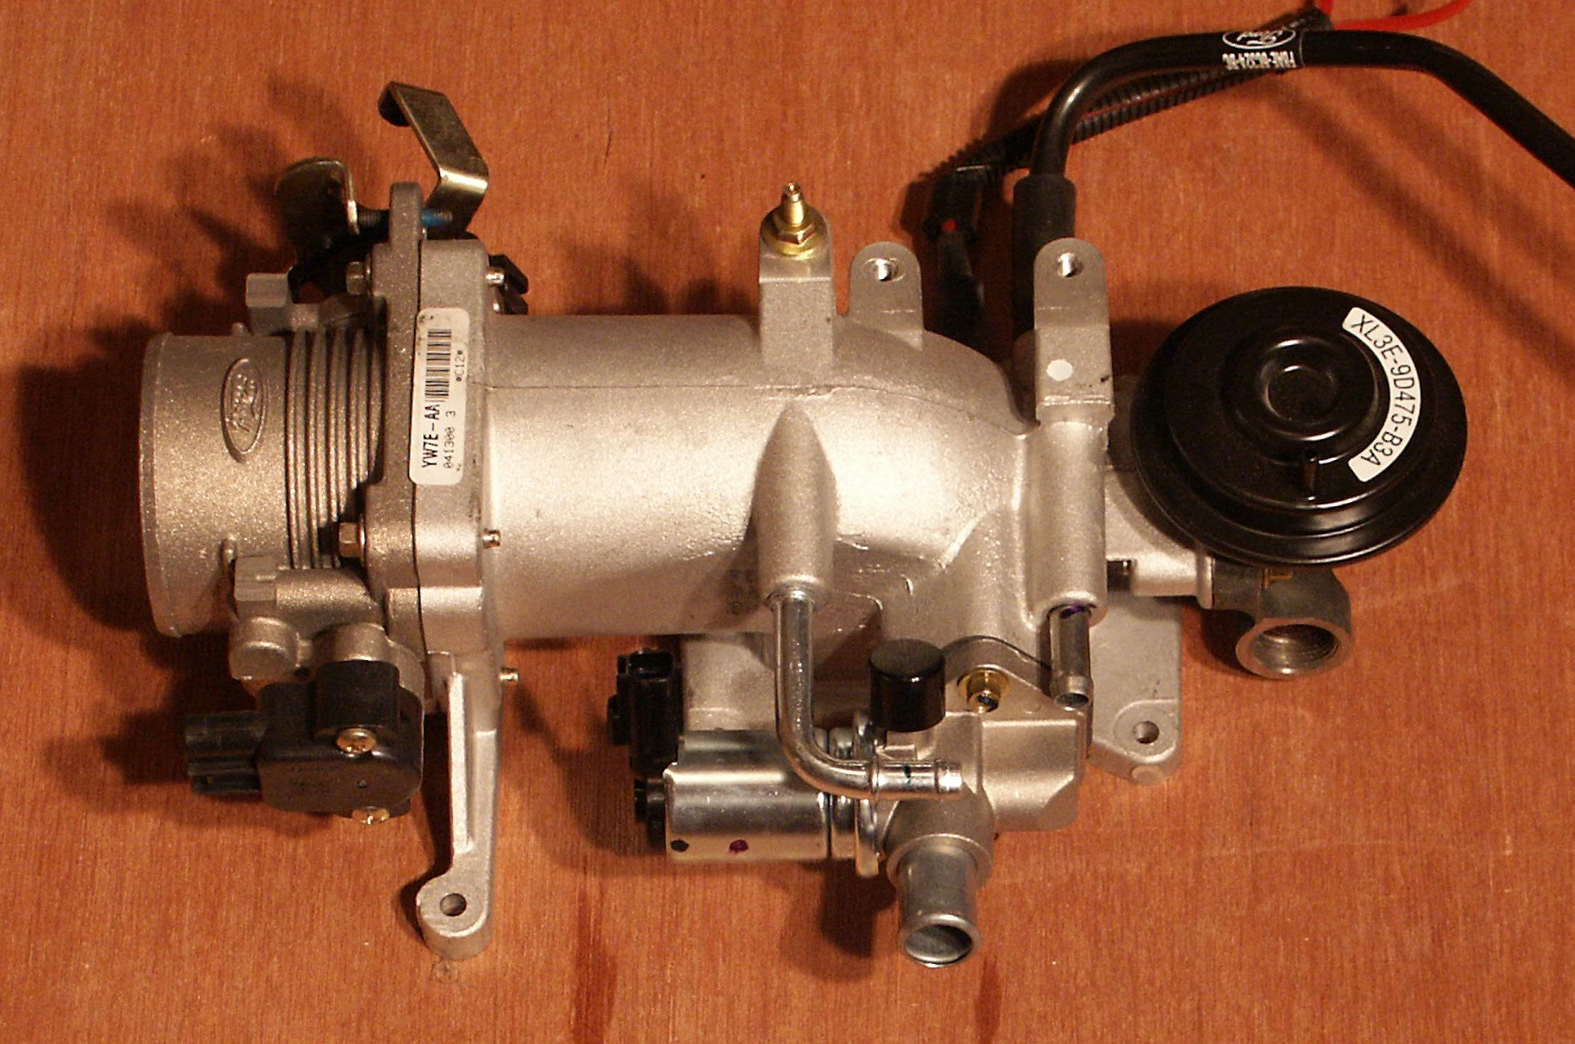 Sdc Copy likewise Hqdefault as well Water Pump additionally Box together with Sdc Copy. on 2000 crown victoria exhaust